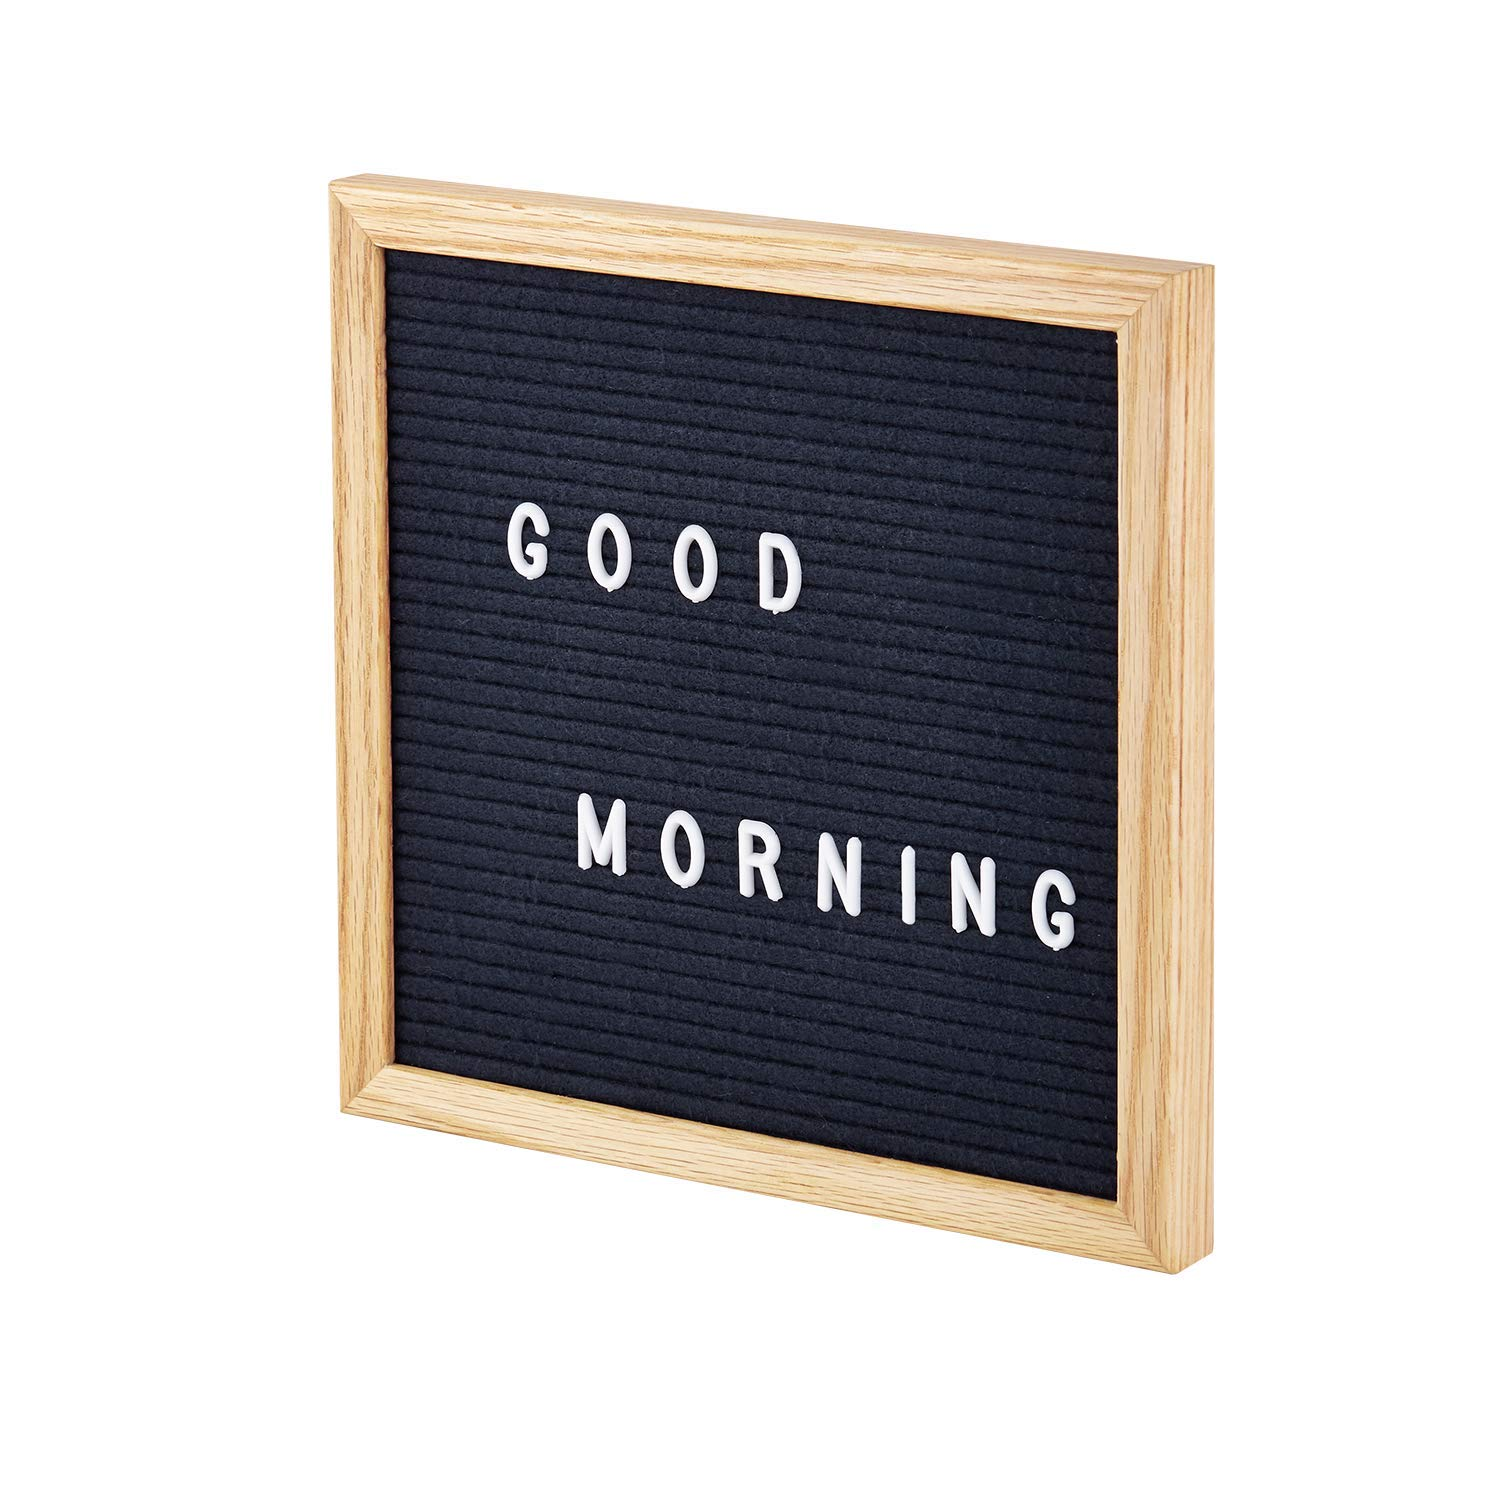 Gingersnap Felt Letter Board Small 10x10 Inch Midnight Blue